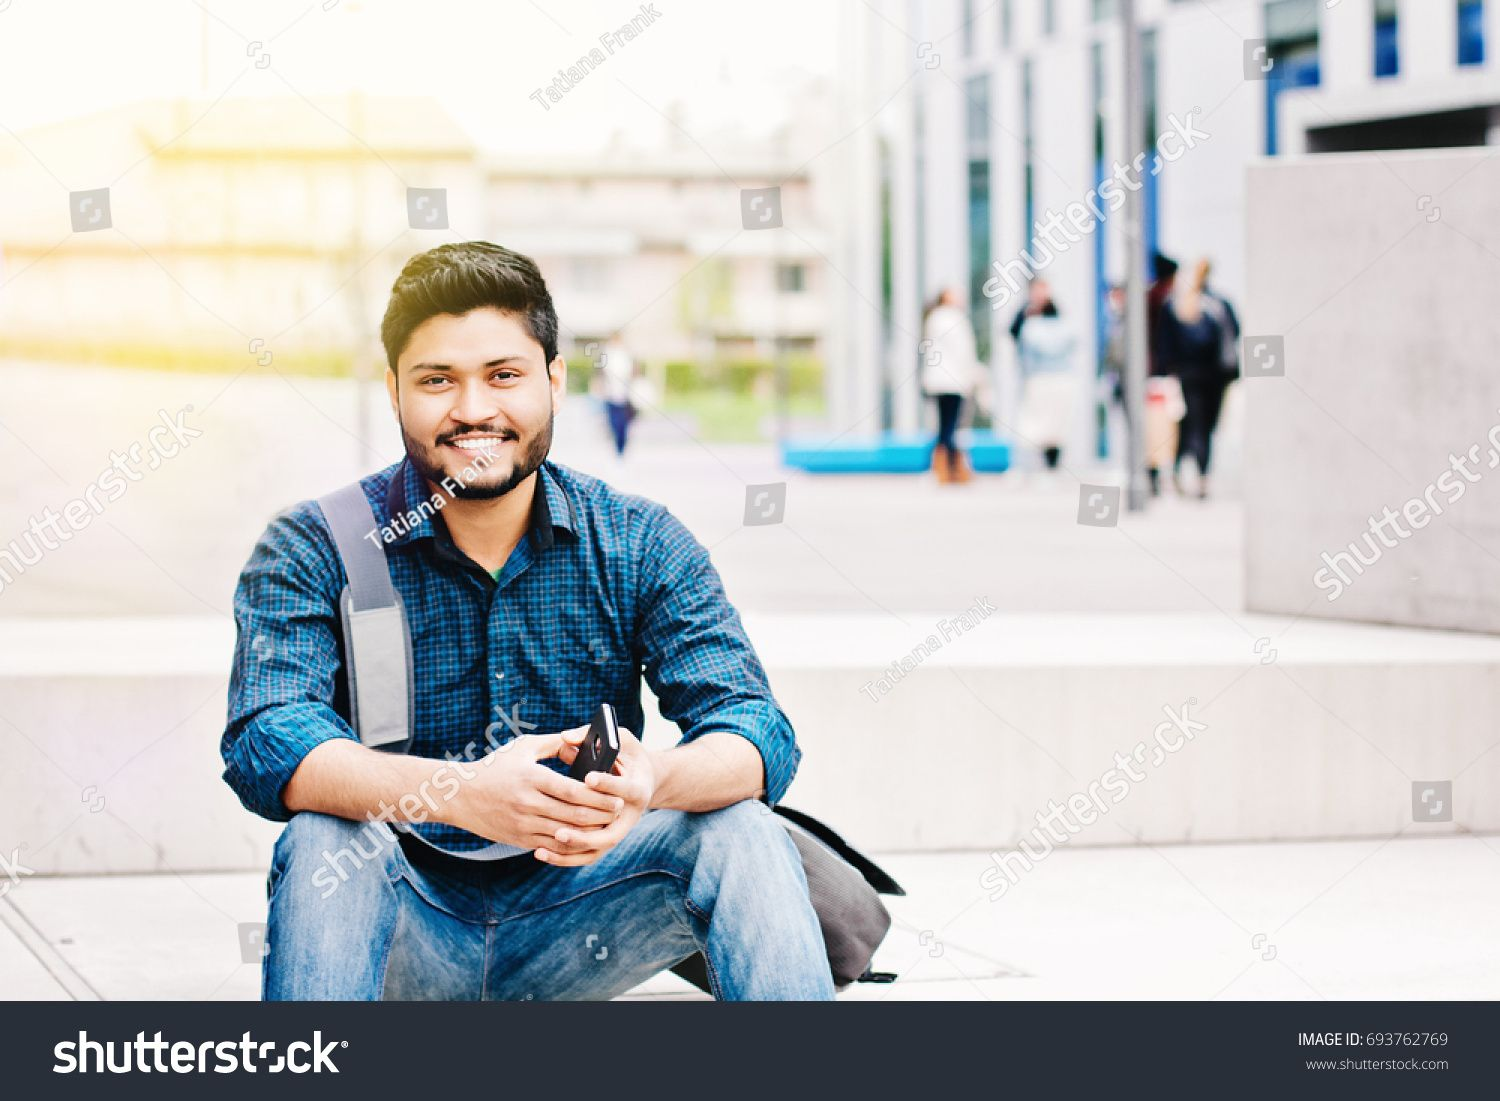 Happy indian male student holding smartphone sitting